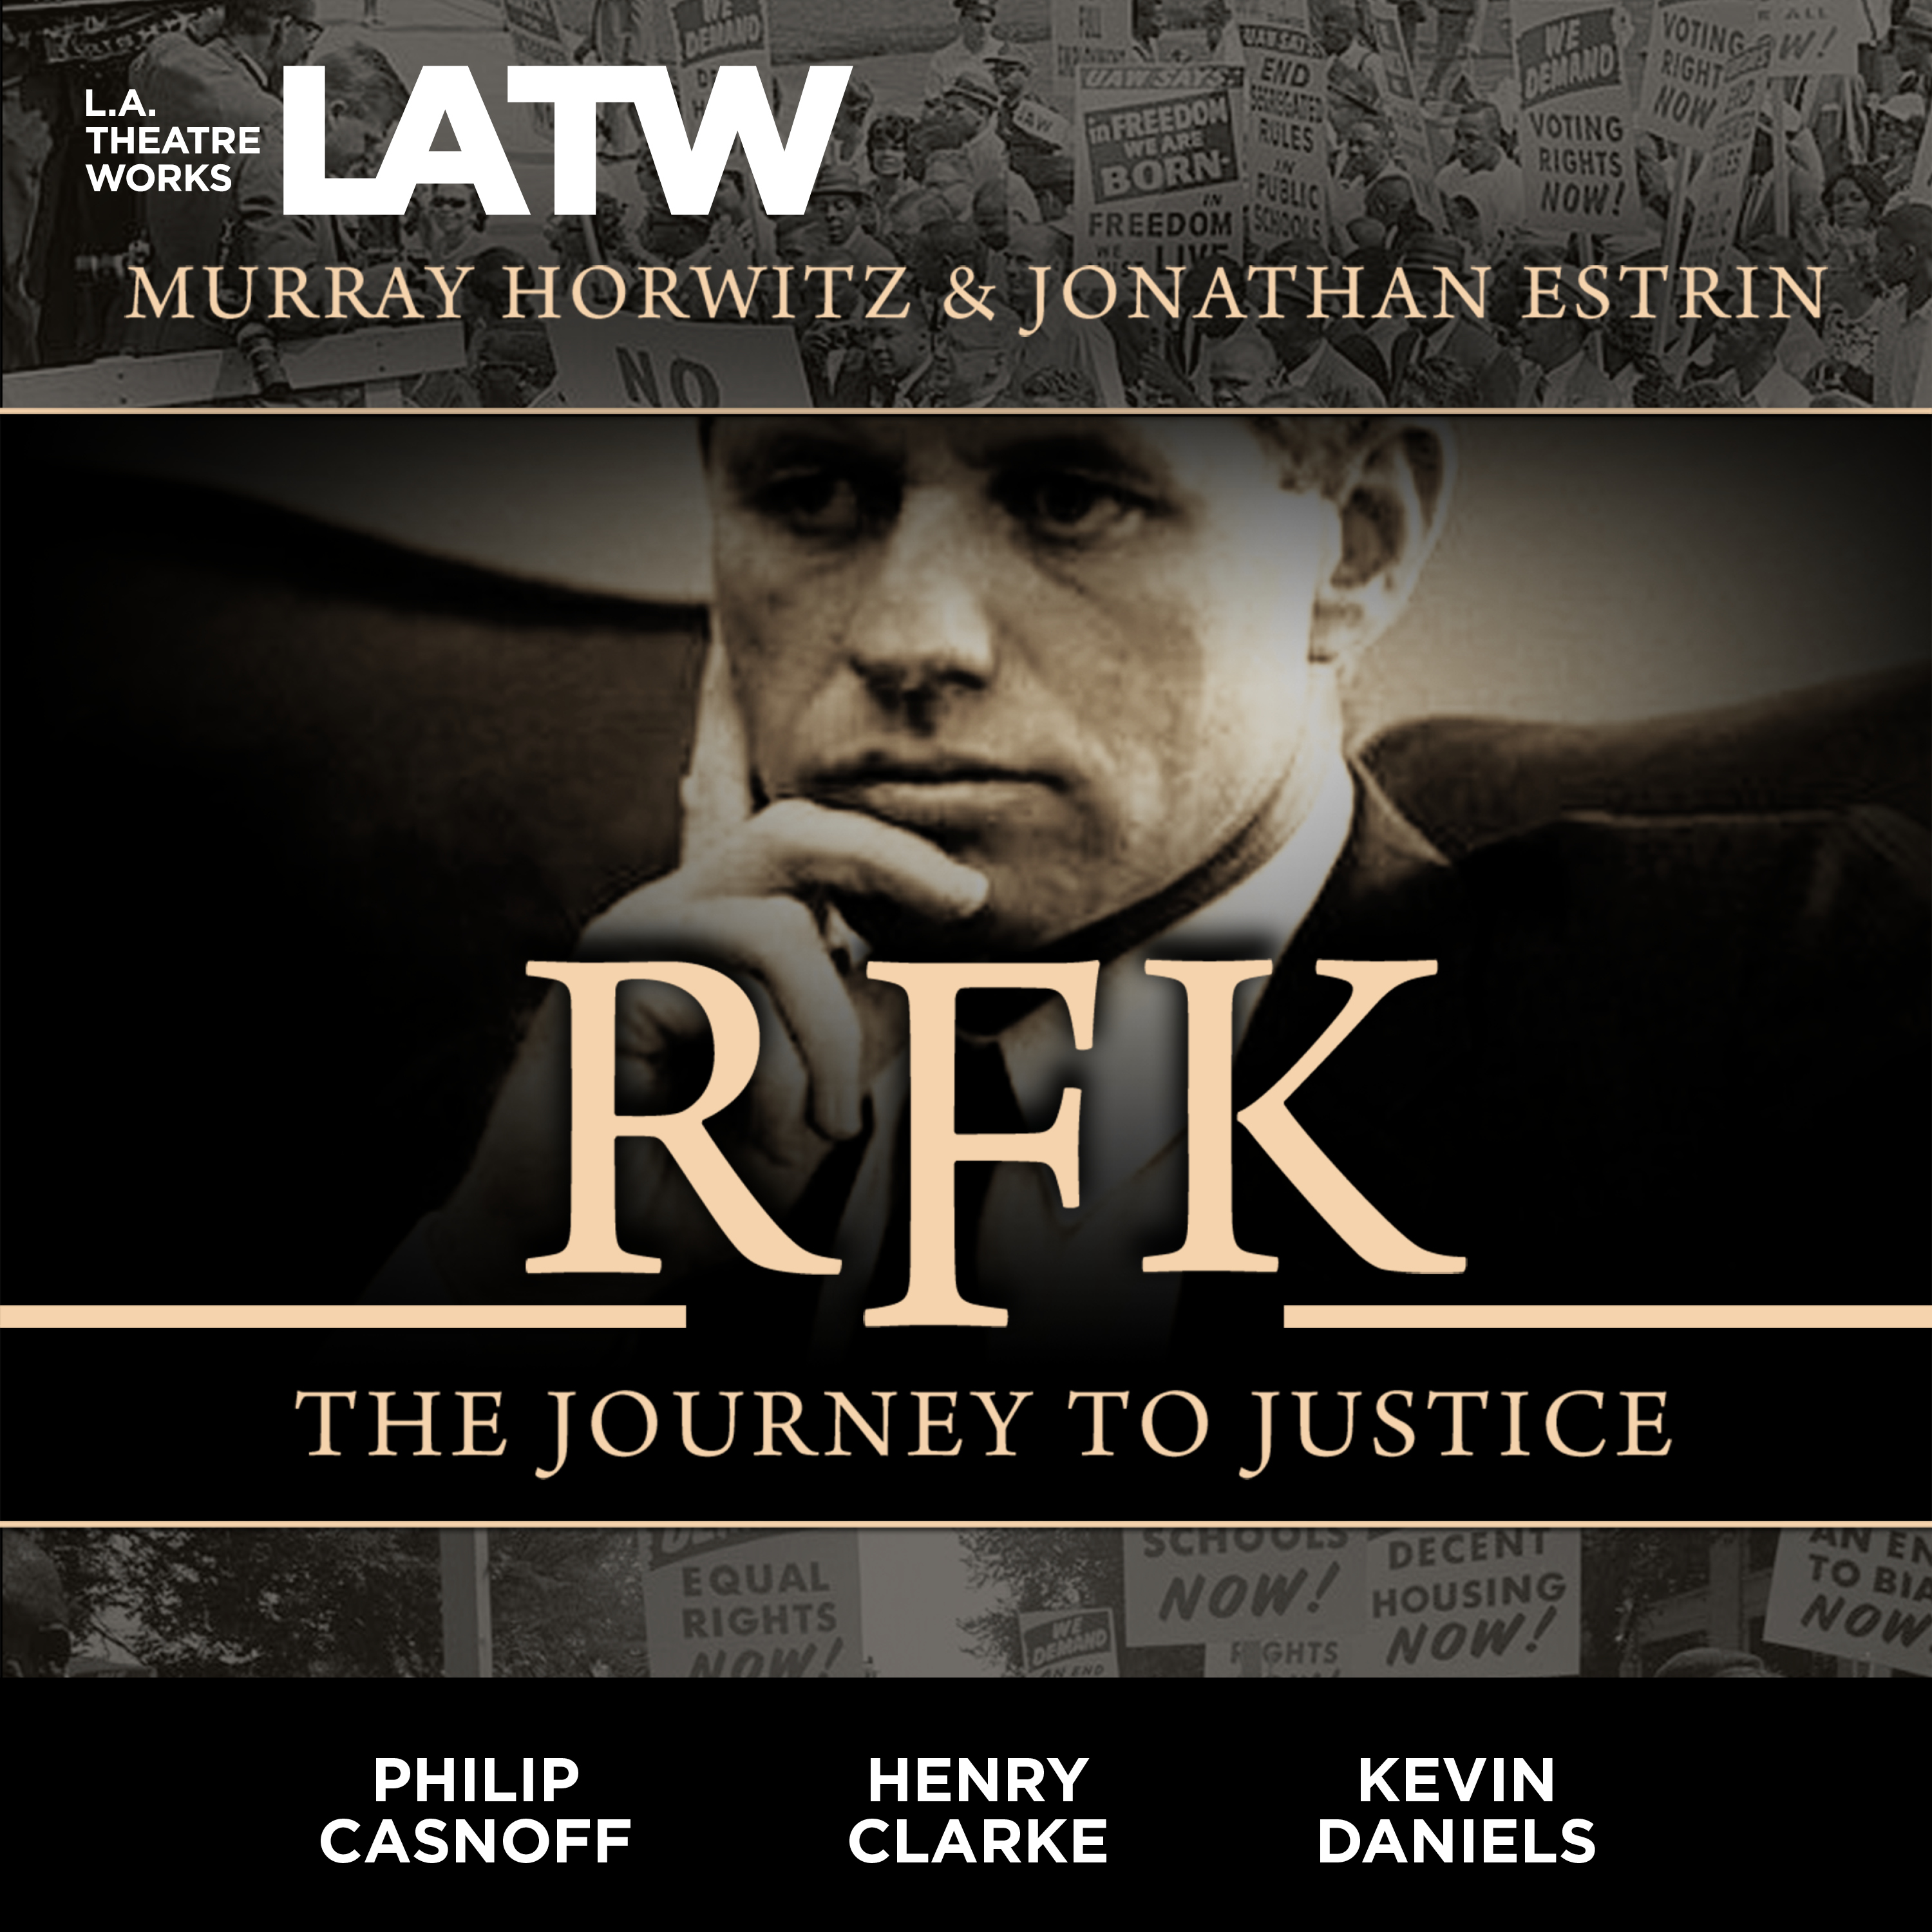 Rfk-journey-to-justice-digital-cover-3000x3000-r1v1_small